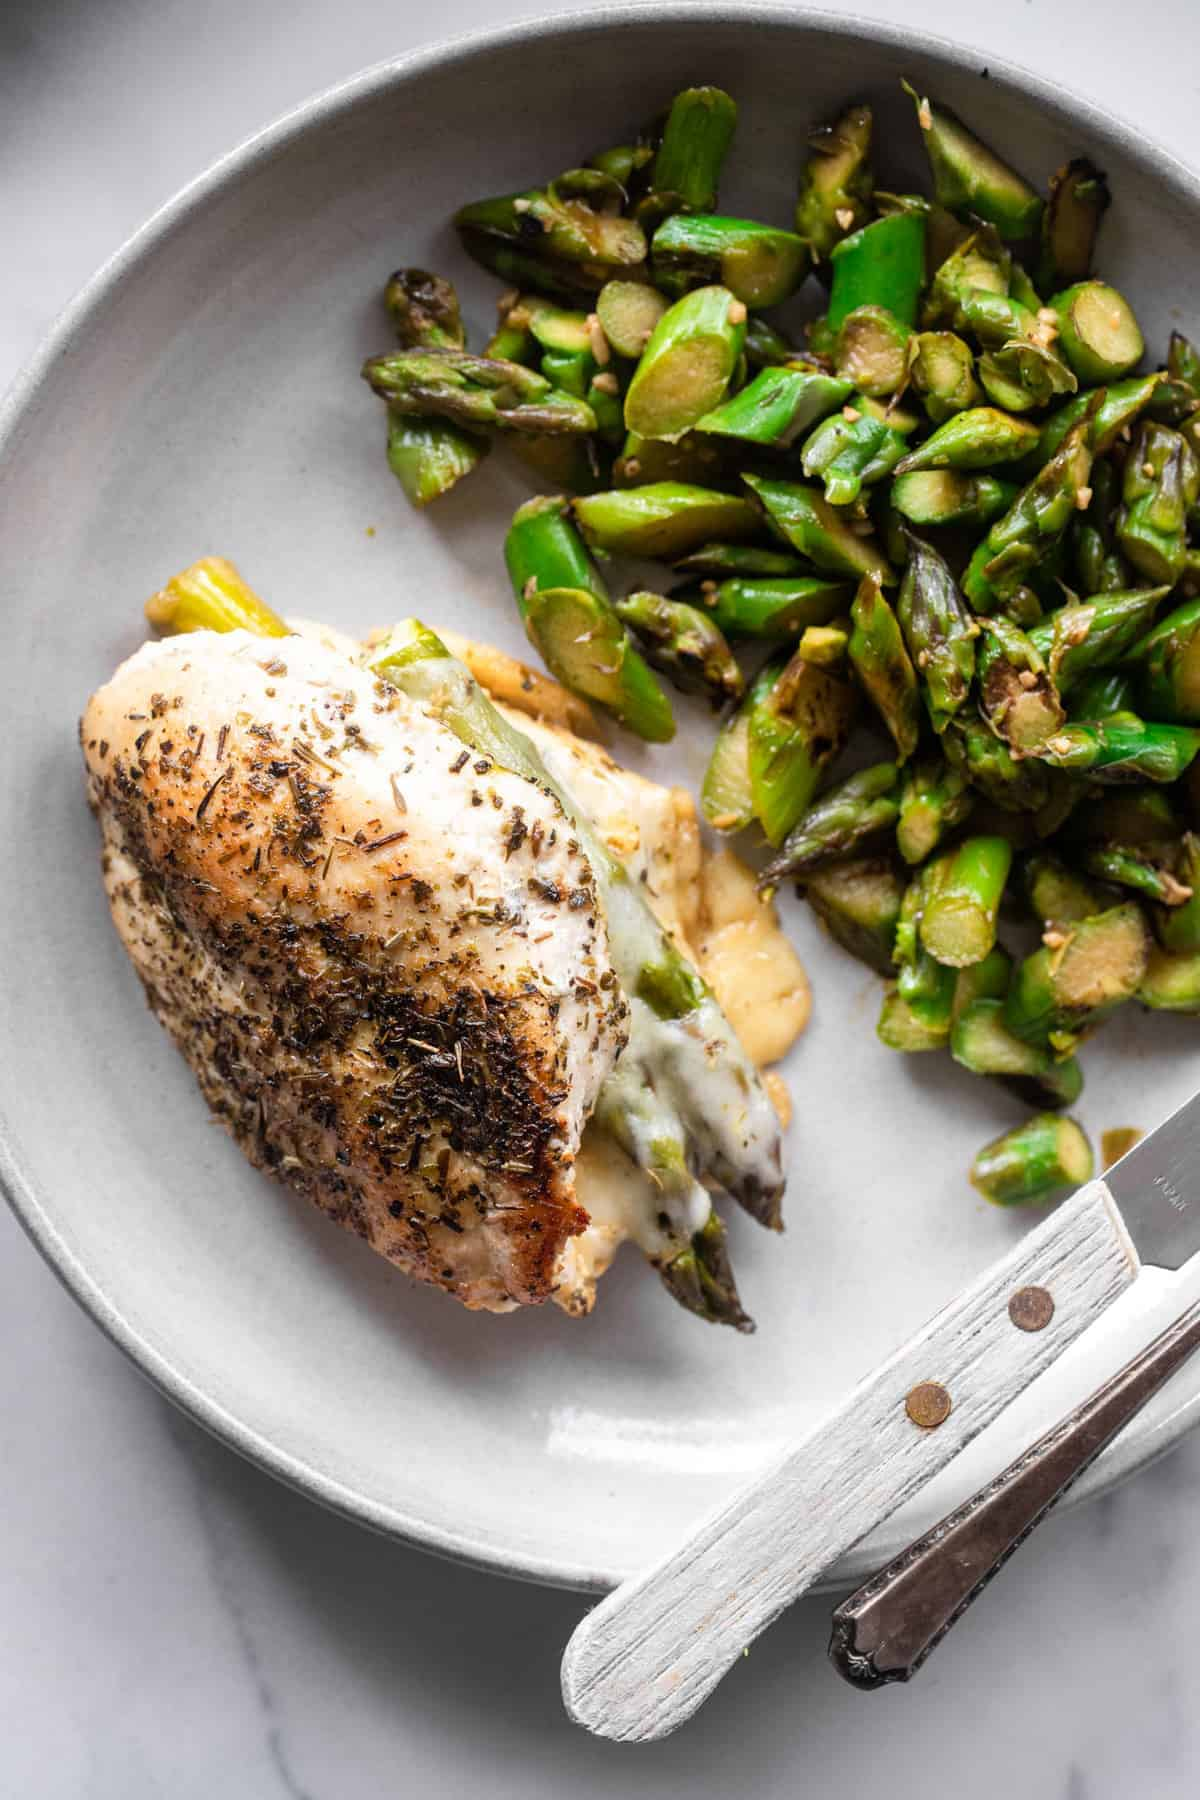 asparagus stuffed chicken on a plate with asparagus stir fry